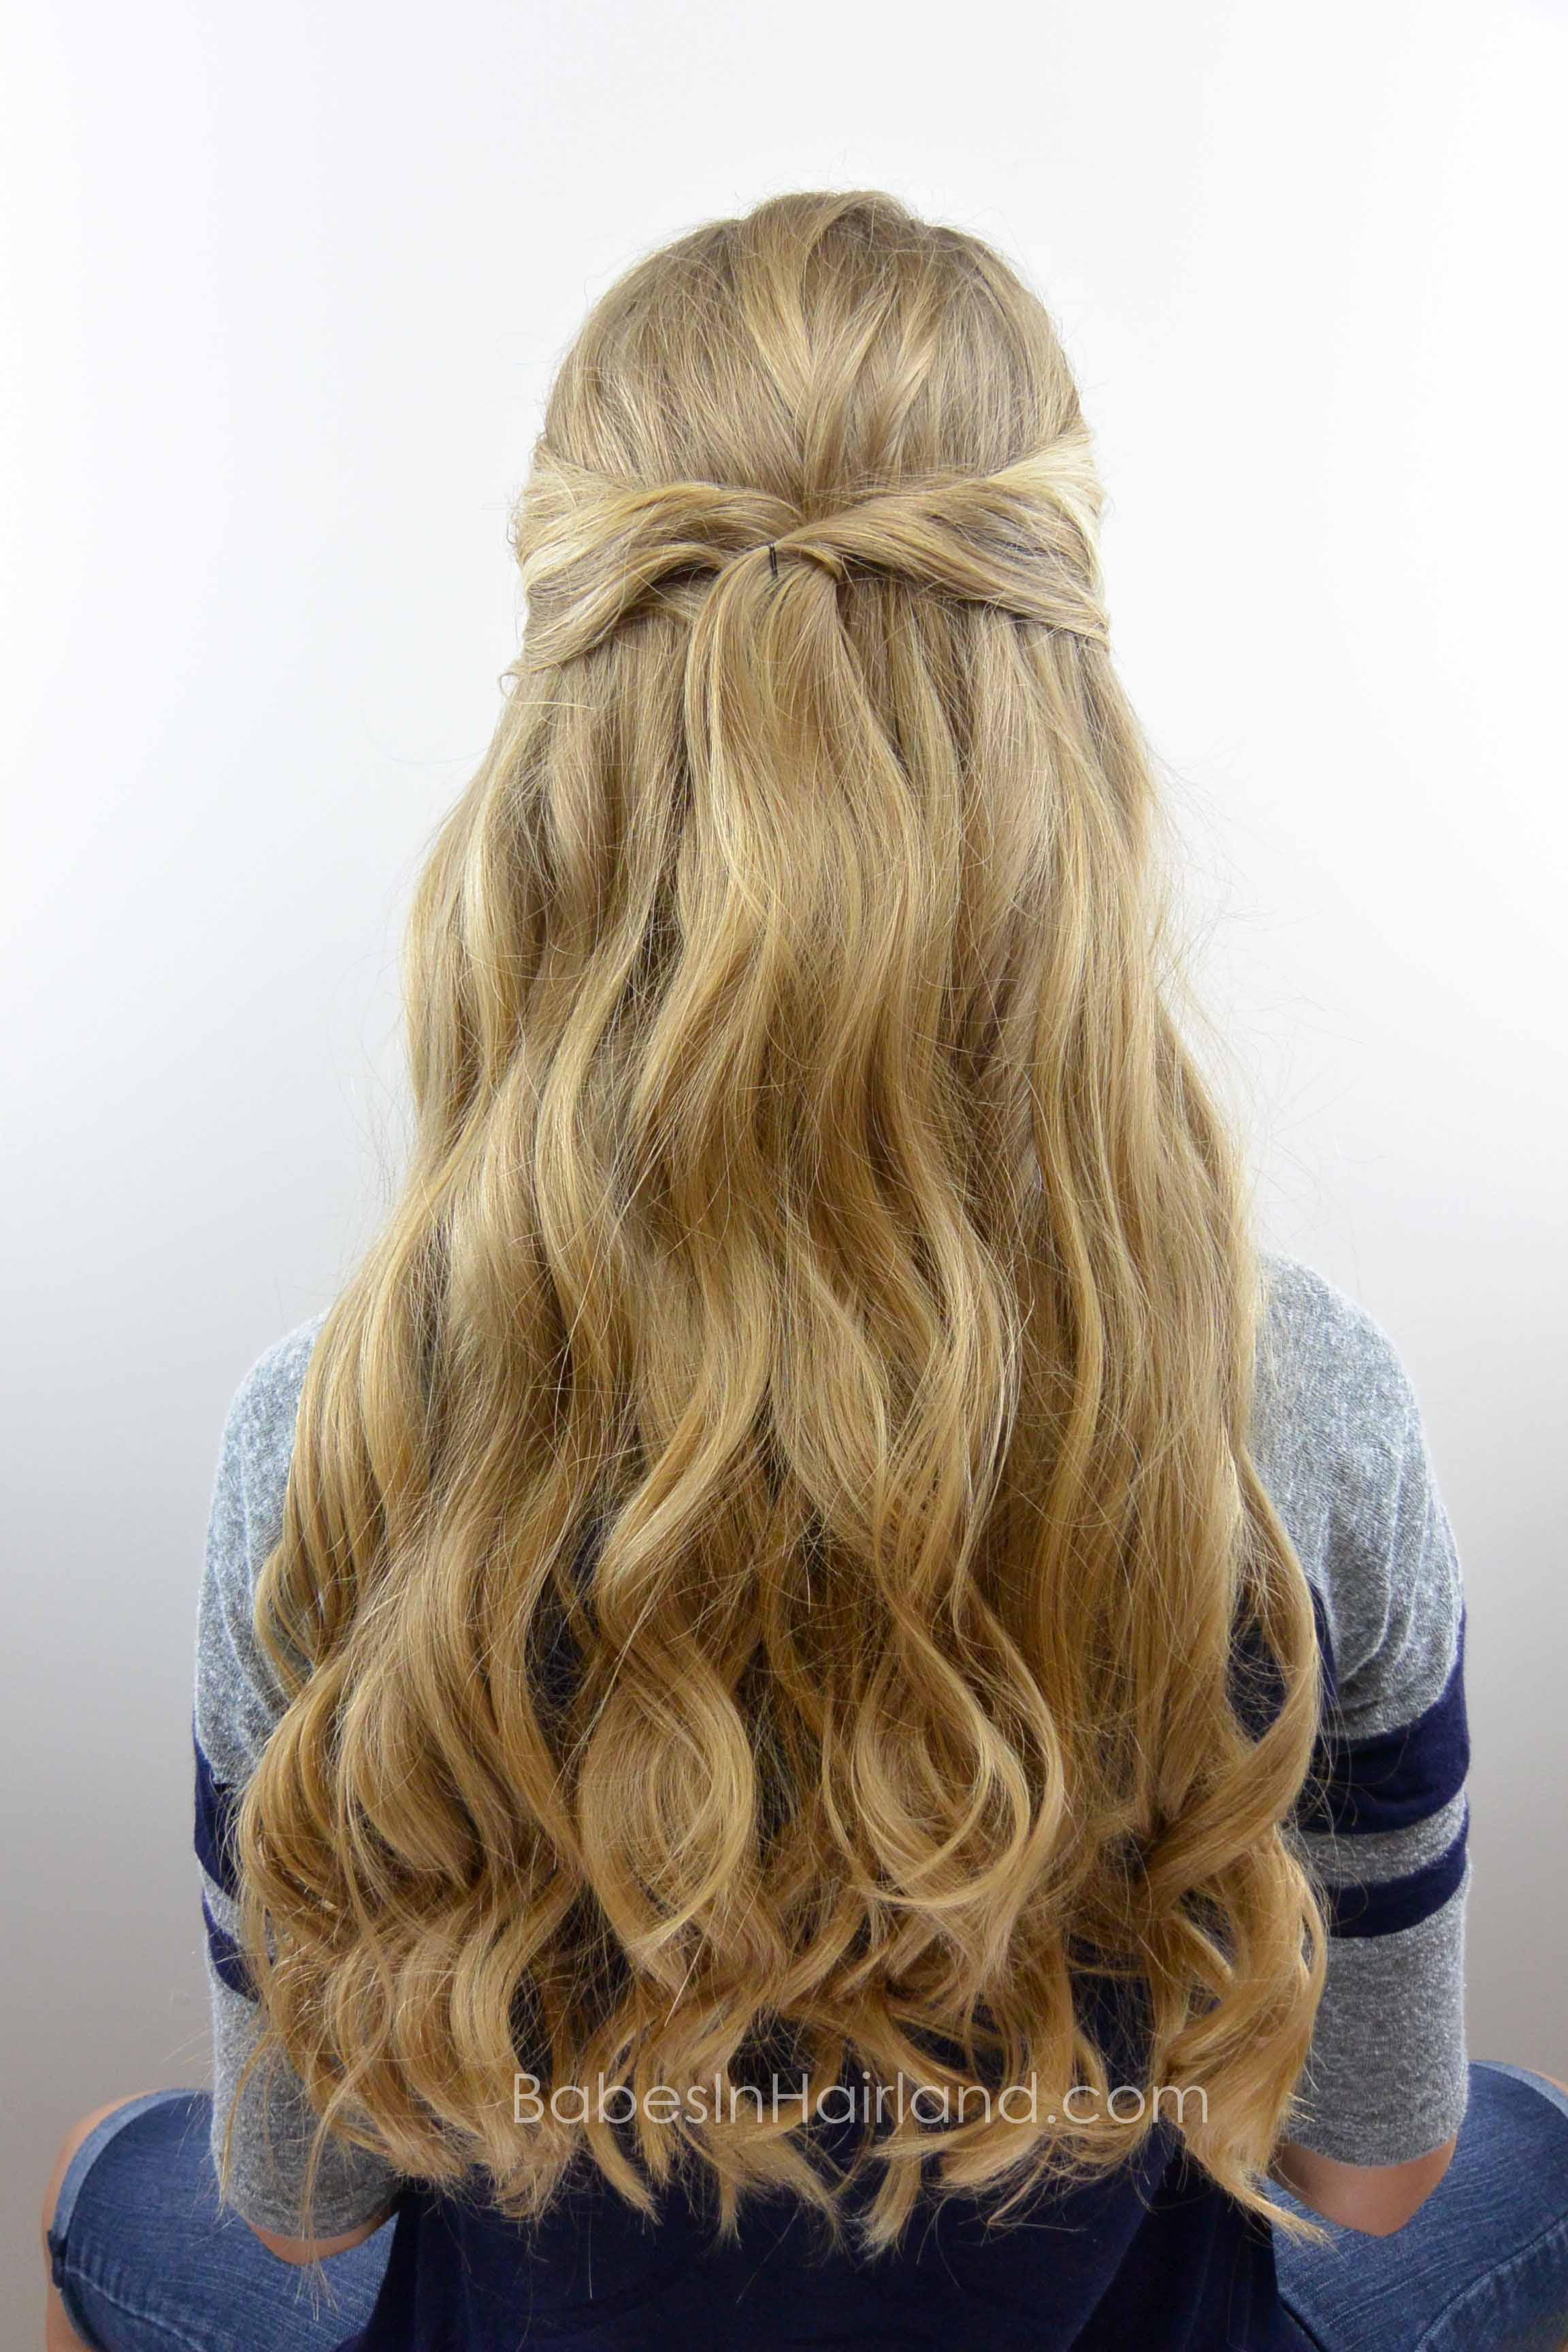 Simple Pullback Amp Curls Nume Wand Review Babes In Hairland